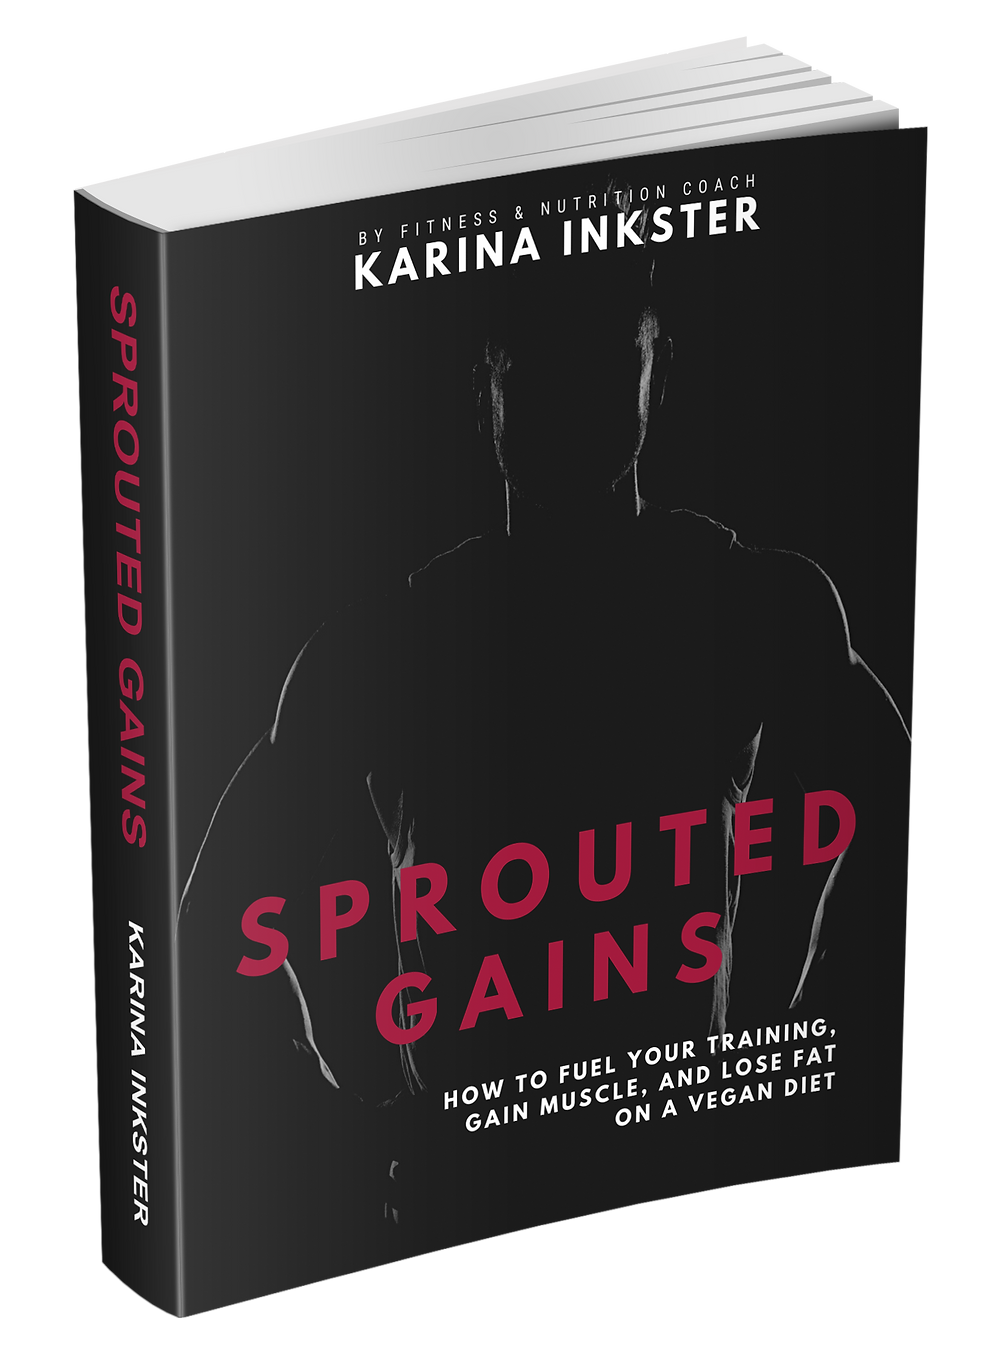 ebook Sprouted Gains by Karina Inkster